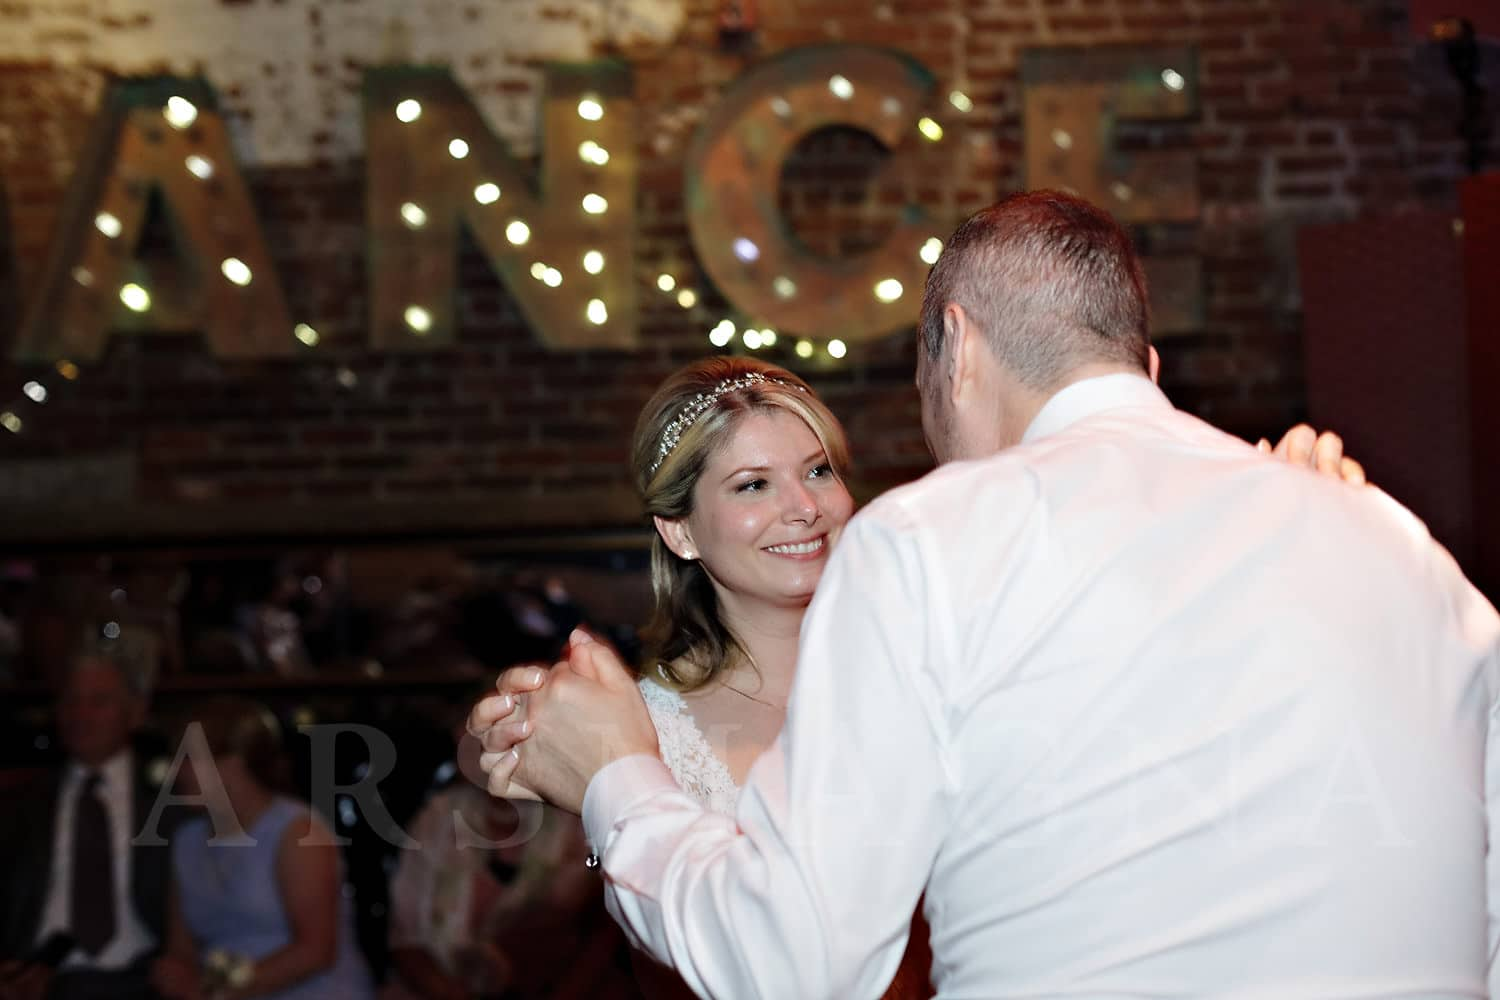 jamaica plain wedding photography indie reception milky way bella luna first dance